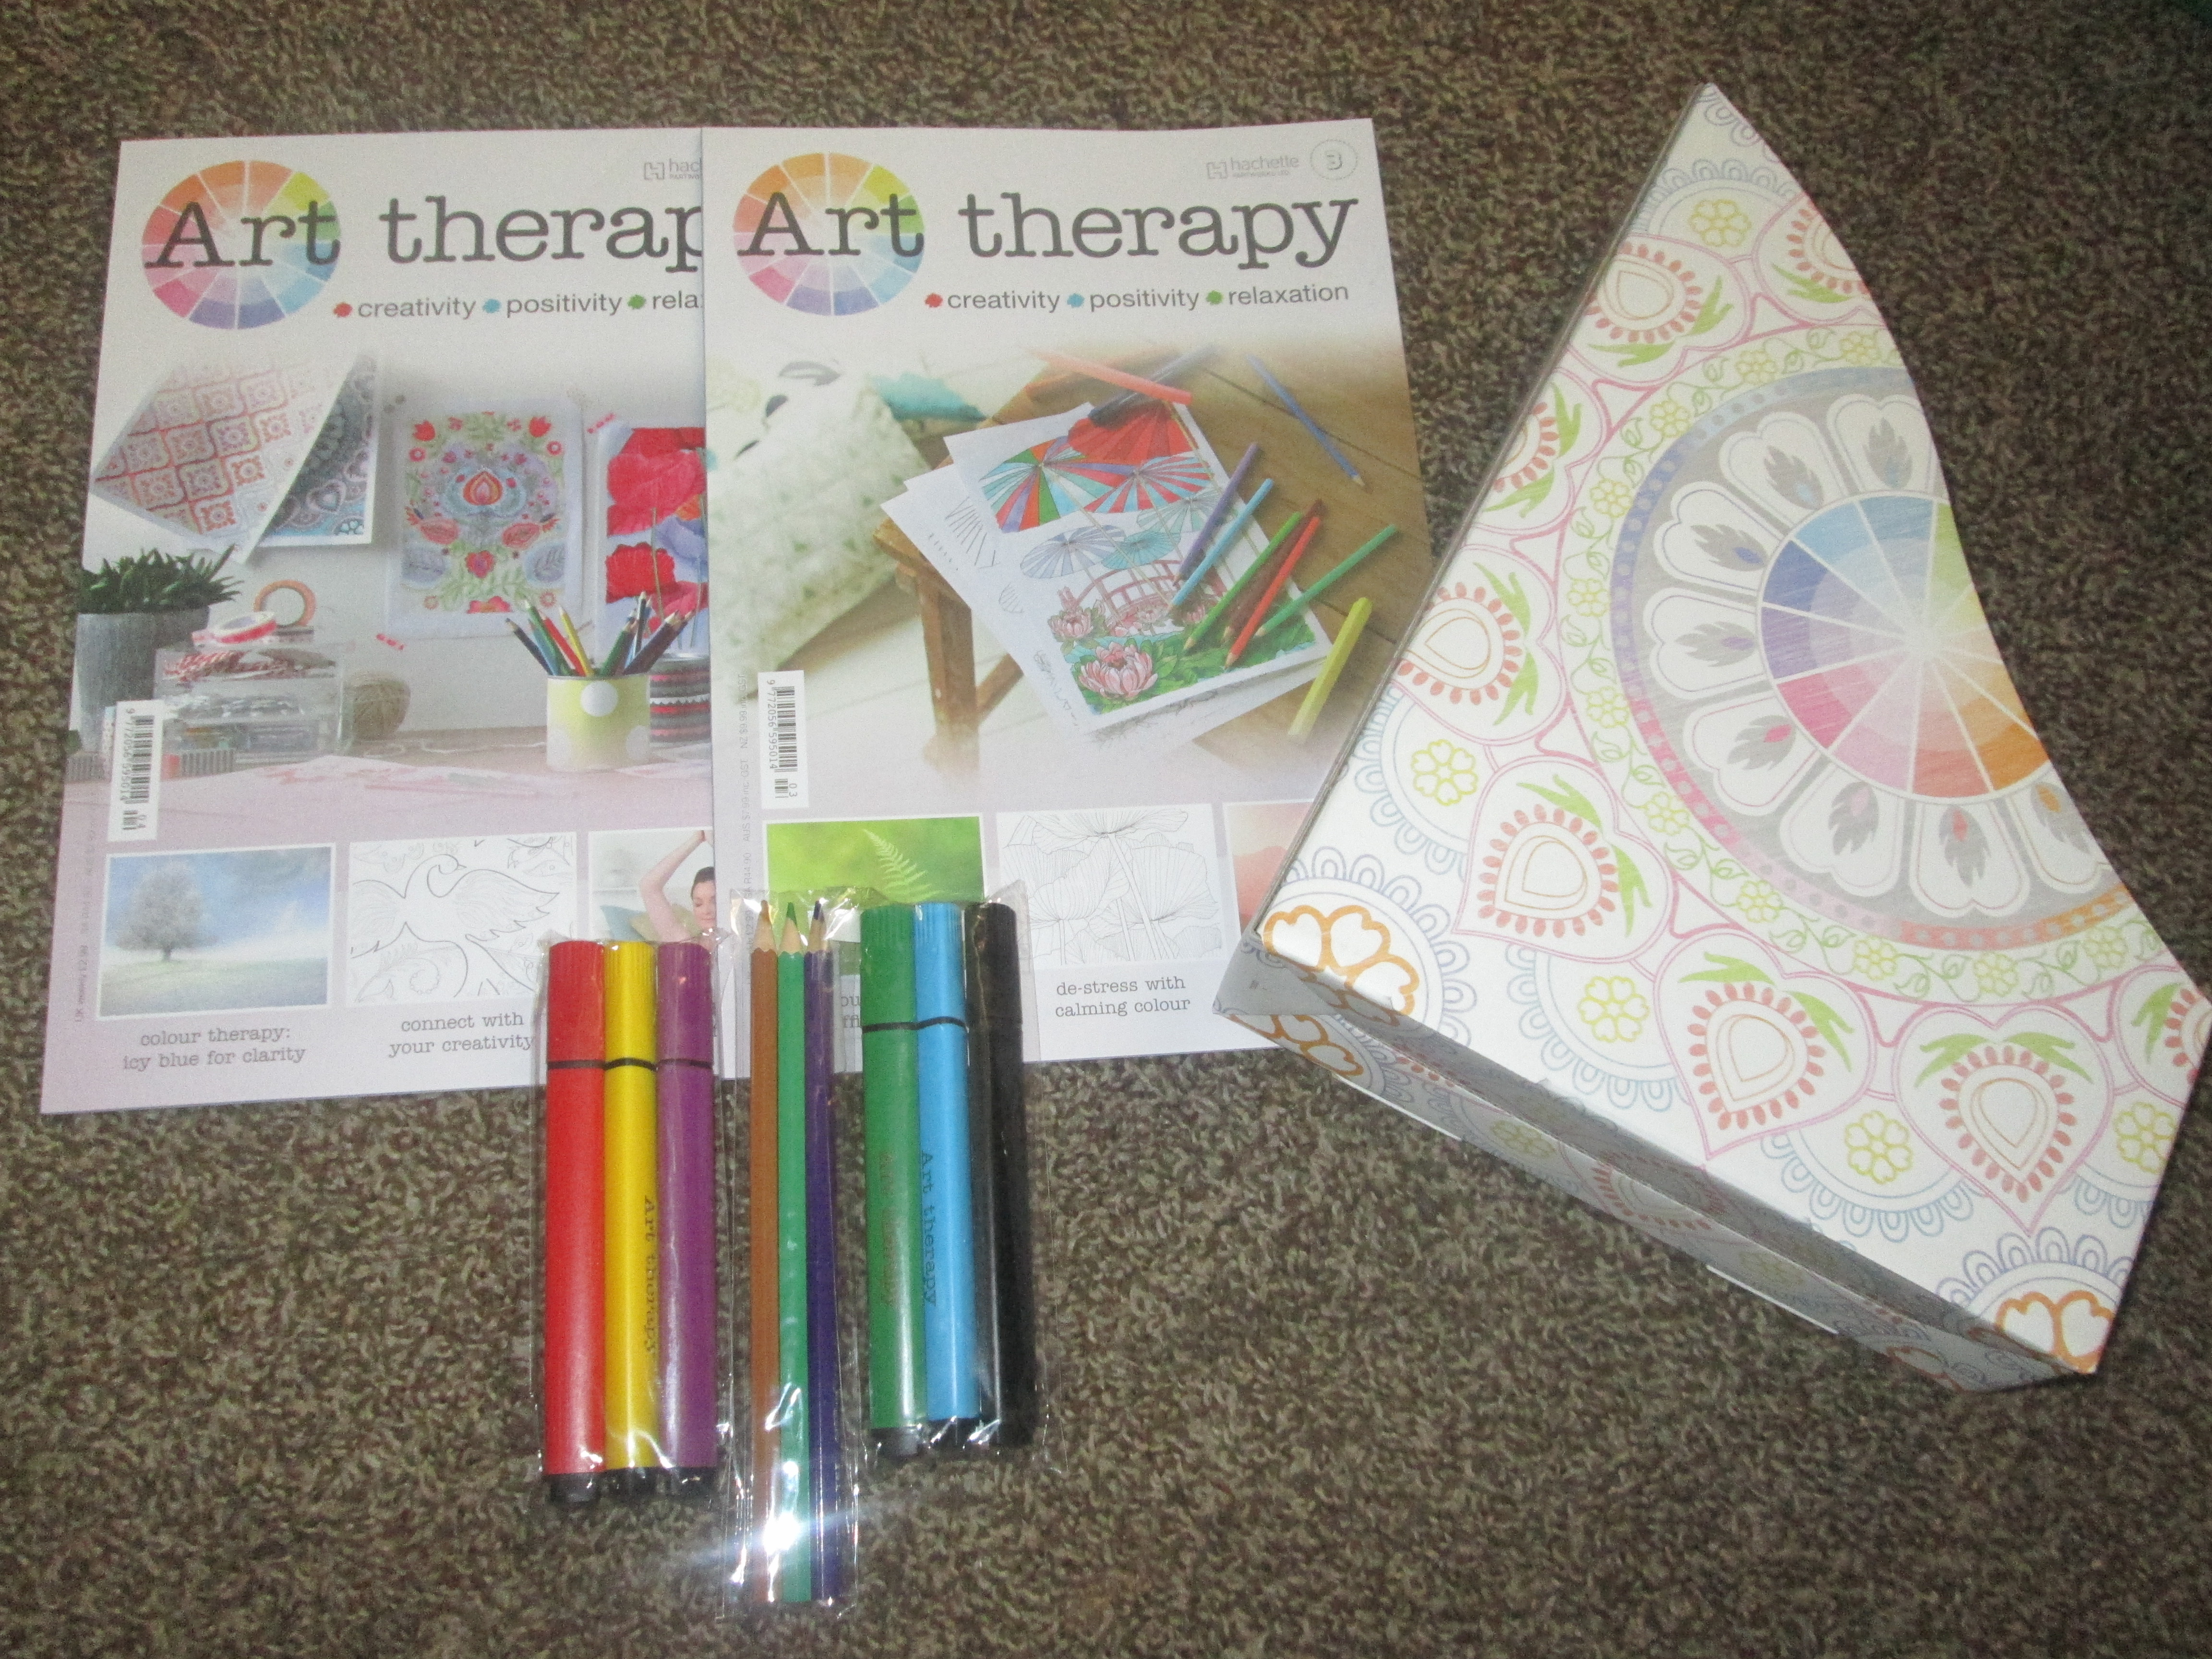 art therapy lit review This text is sure to be a landmark in art therapy literature  oregon and currently  serves on the editorial review board for art therapy: journal of the american.